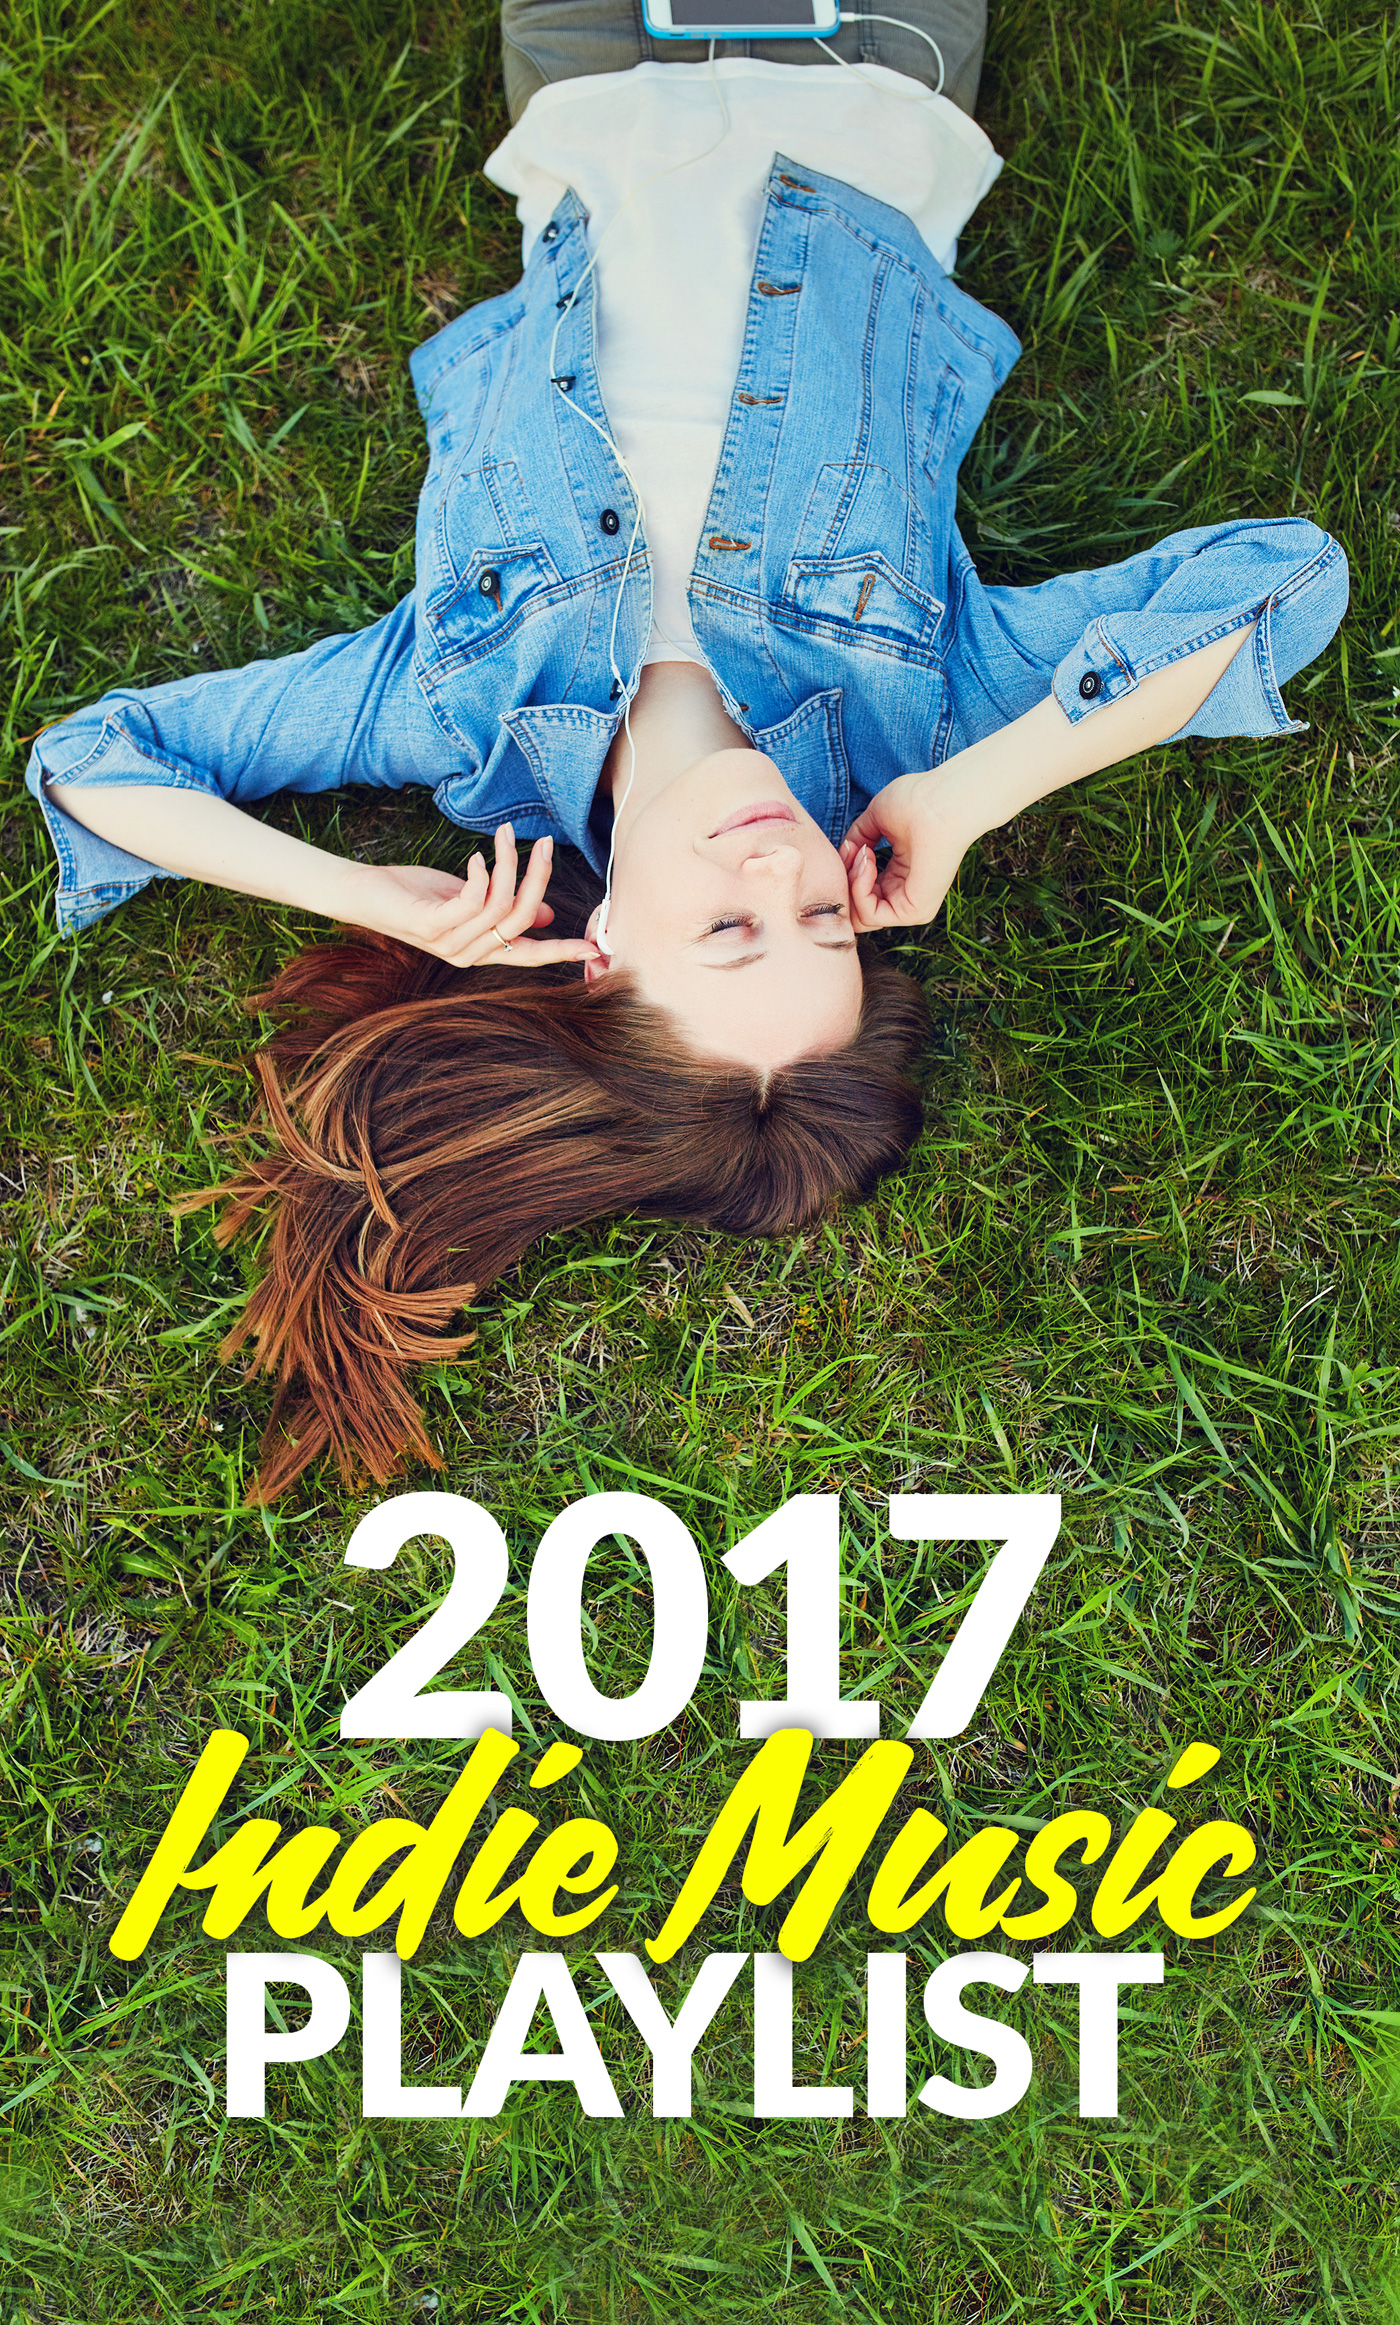 2017 Indie Music Playlist - Best Music of 2017 - #Music #IndieMusic #Alternative #Playlist